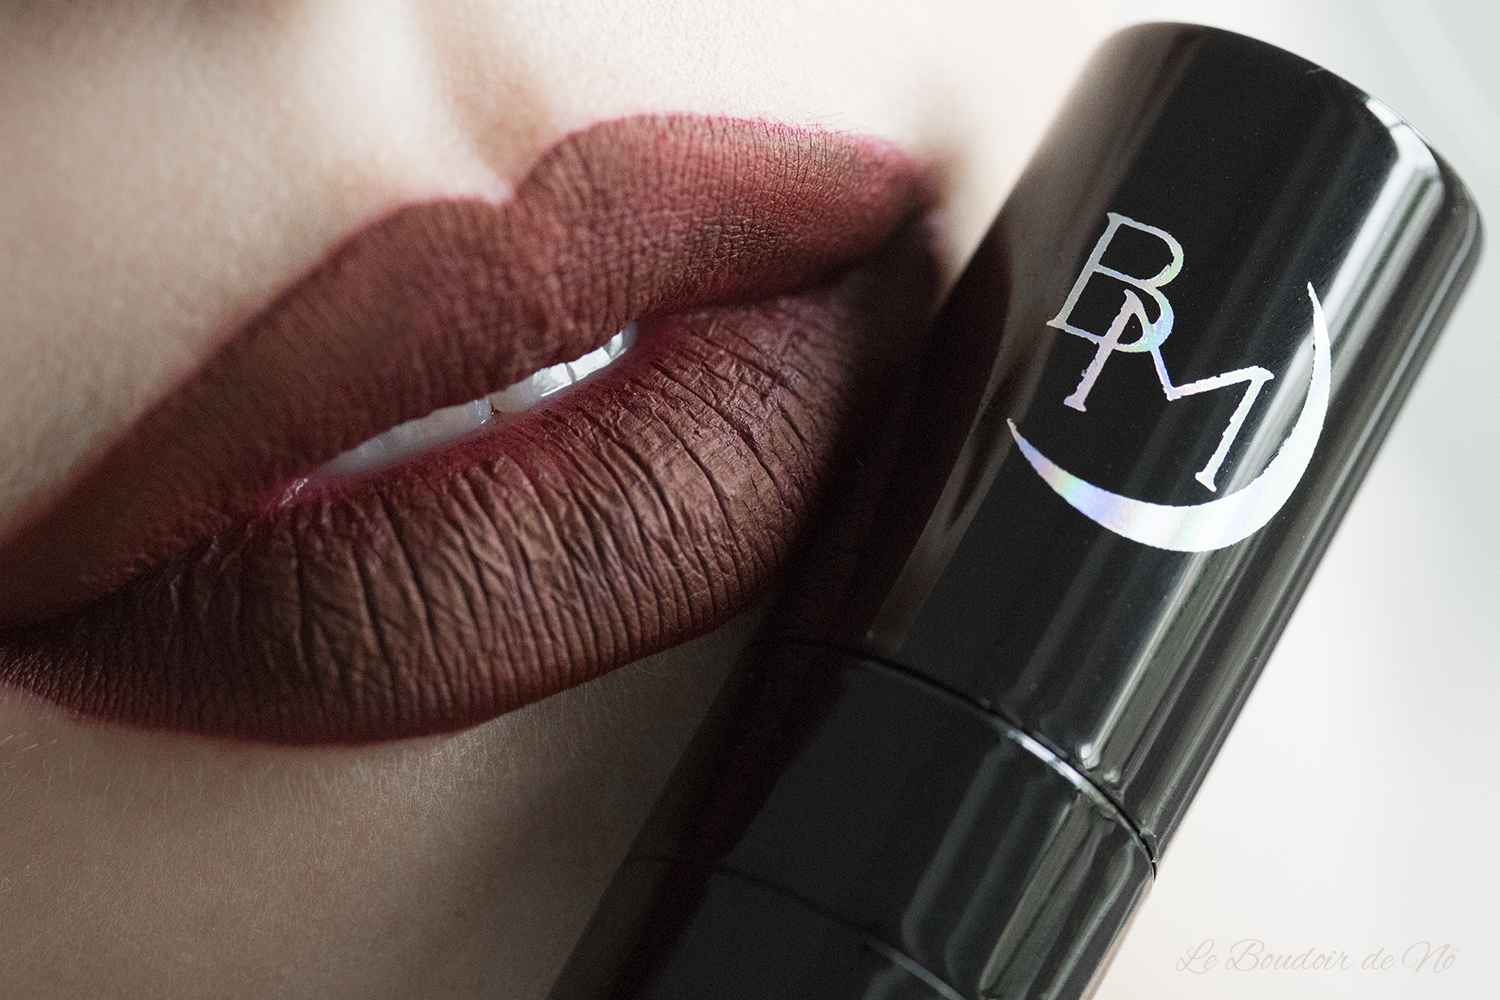 Revue Black Moon Cosmetics Liquid to Mattes, avis, swatchs, lipswatch Deranged